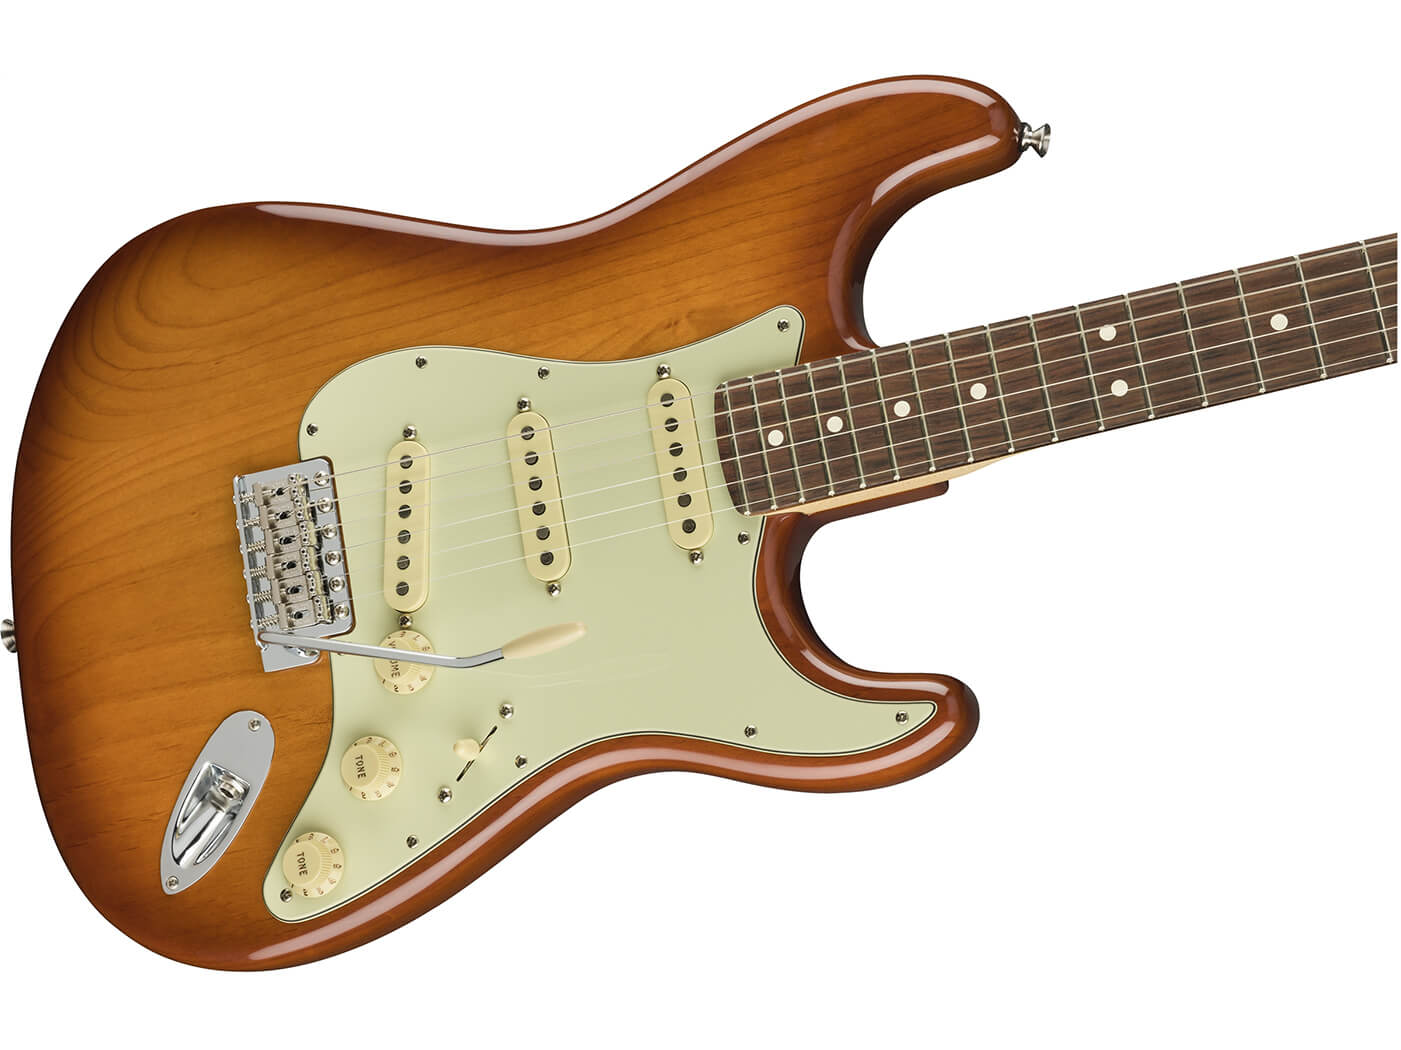 Curt Henderson introduces the American Performer Stratocaster